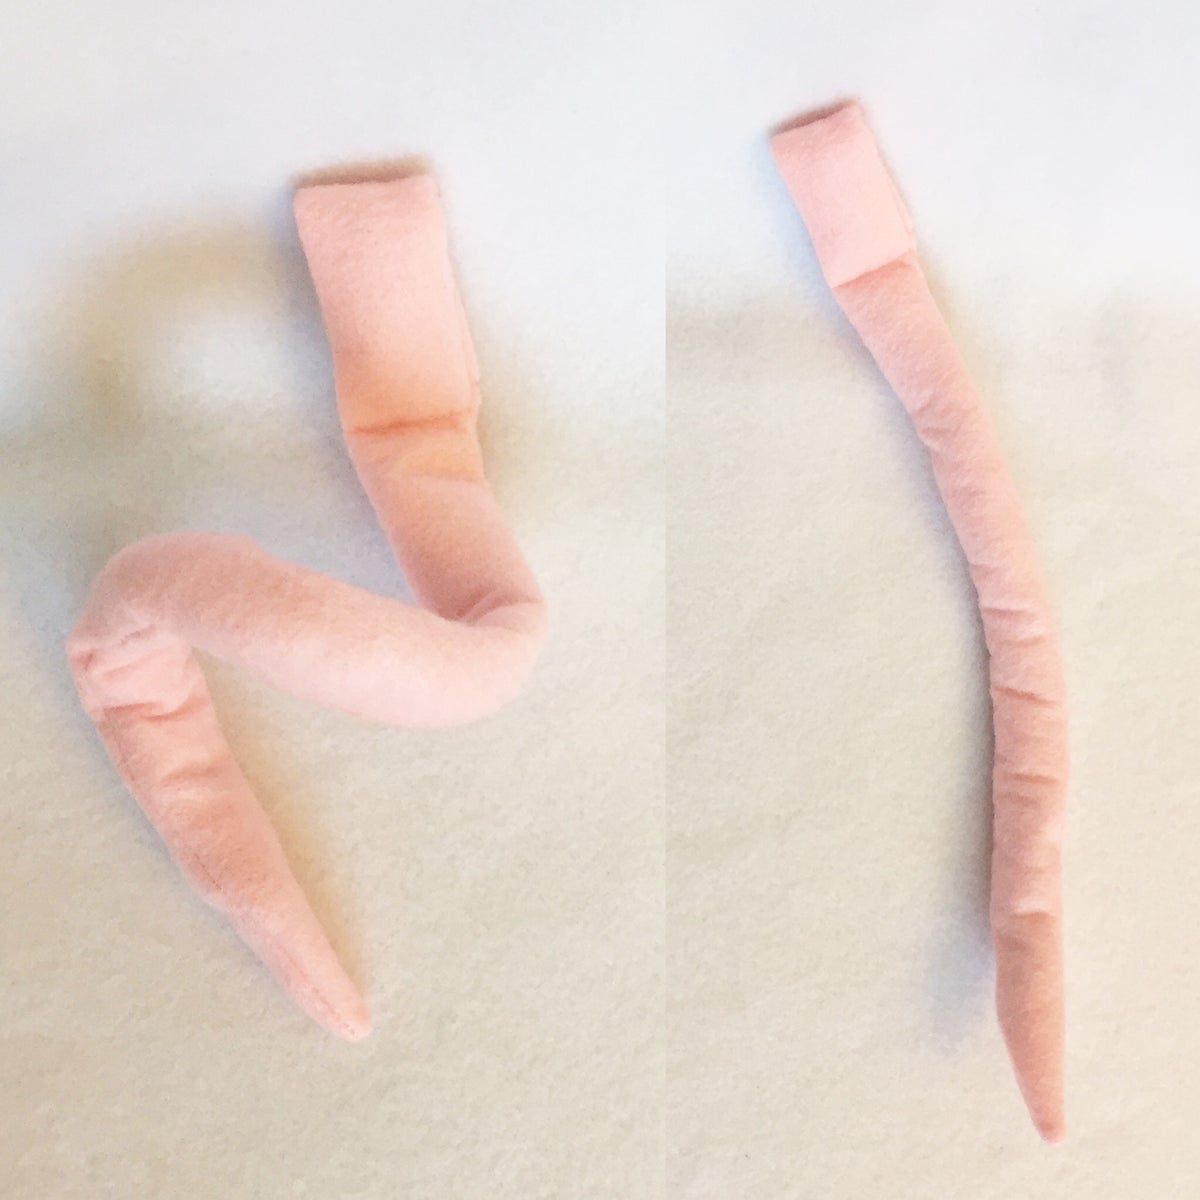 Image of Pink Pig Ears, Tail, Nose